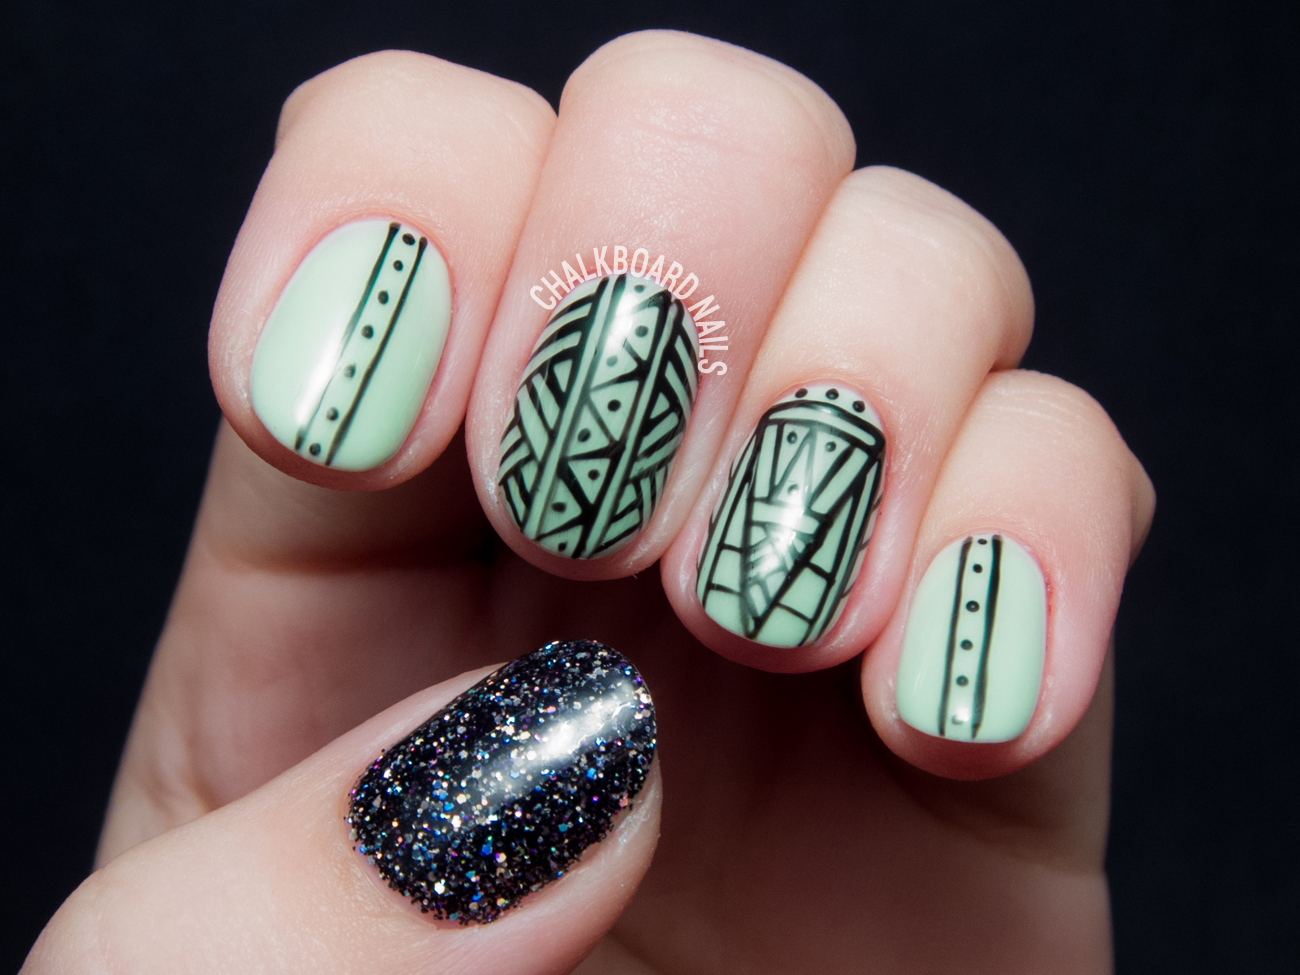 Glowing patterned gel nails by @chalkboardnails